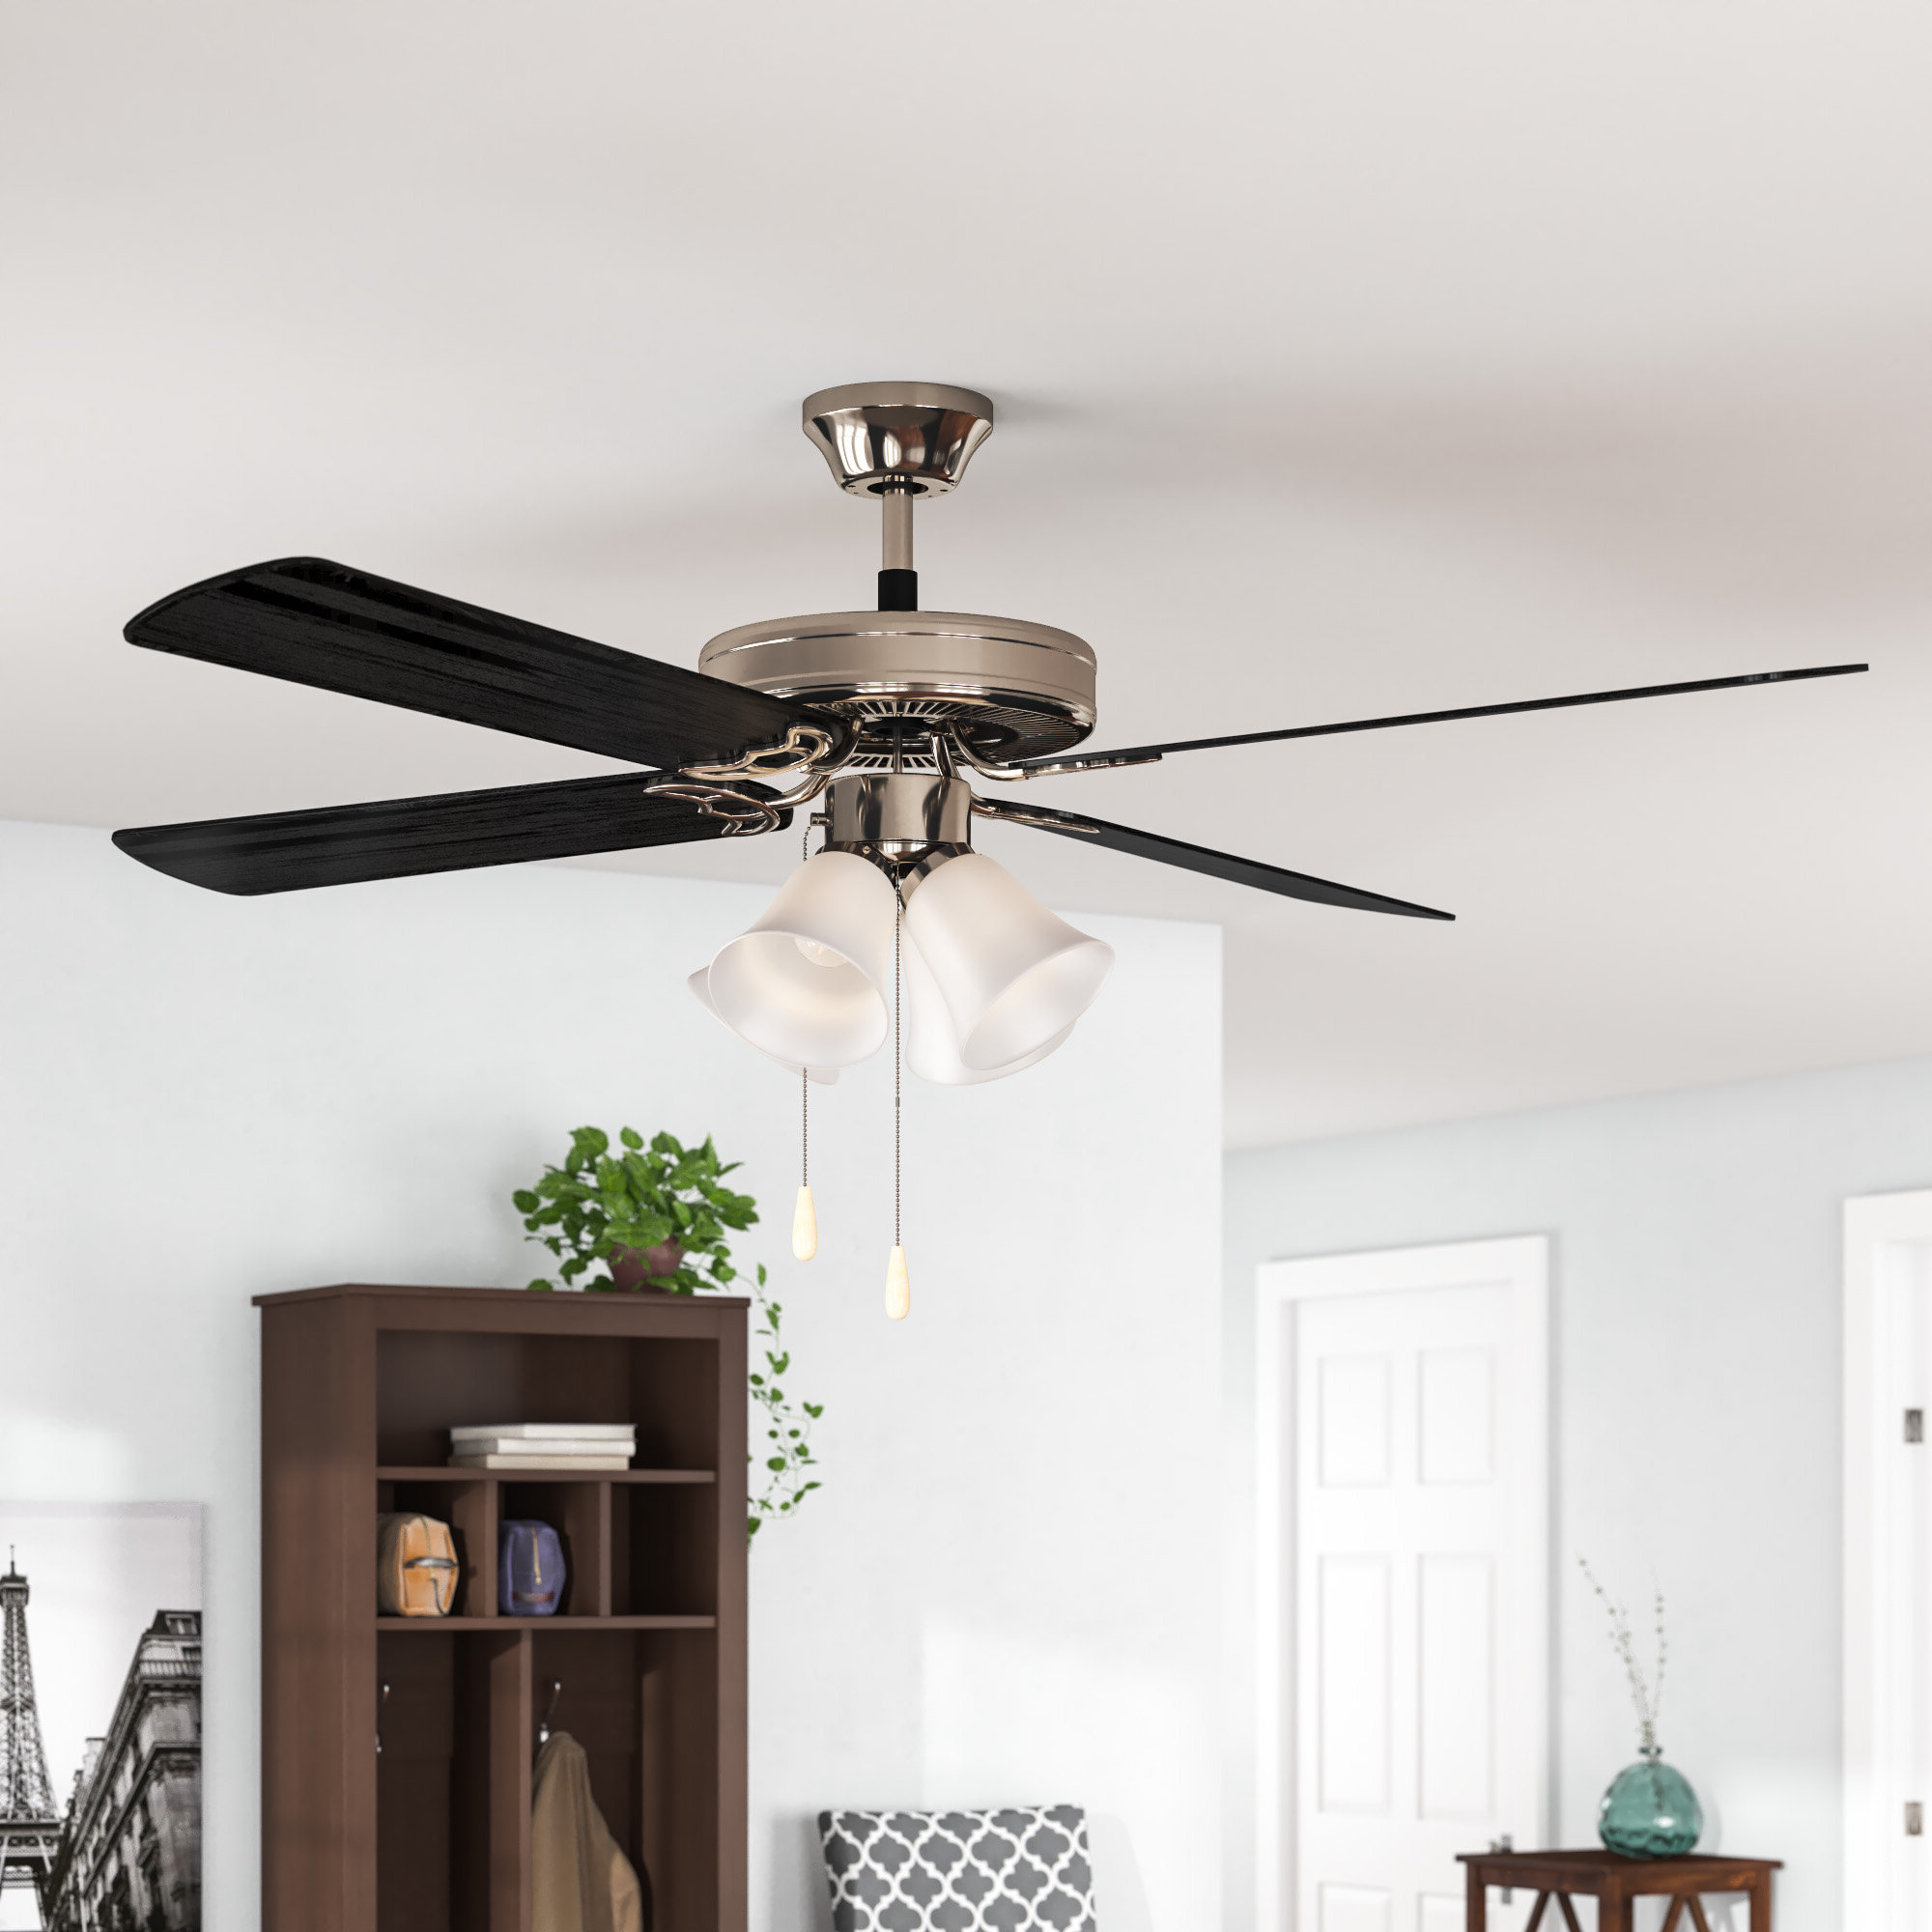 """Recent Southern Breeze 5 Blade Ceiling Fans Intended For 52"""" Cedar Drive 5 Blade Ceiling Fan, Light Kit Included (View 20 of 20)"""